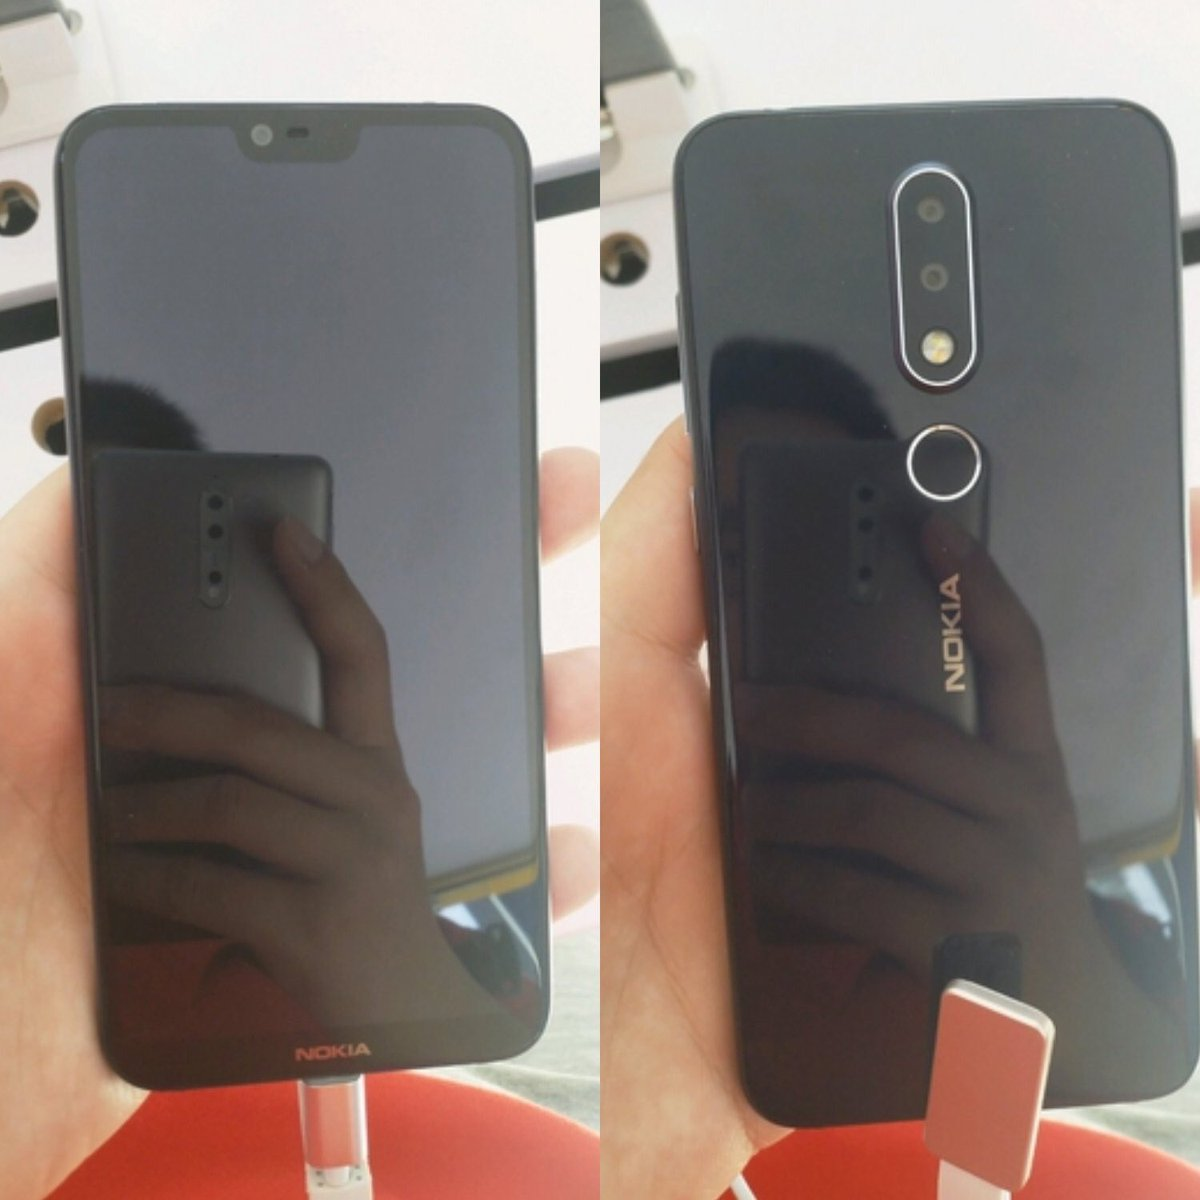 Nokia X6 To Launch On May 17 Update Tech Updates X Dual Sim 4gb Black Hmd Global Expected Series Smartphone In China 16th According A New Report